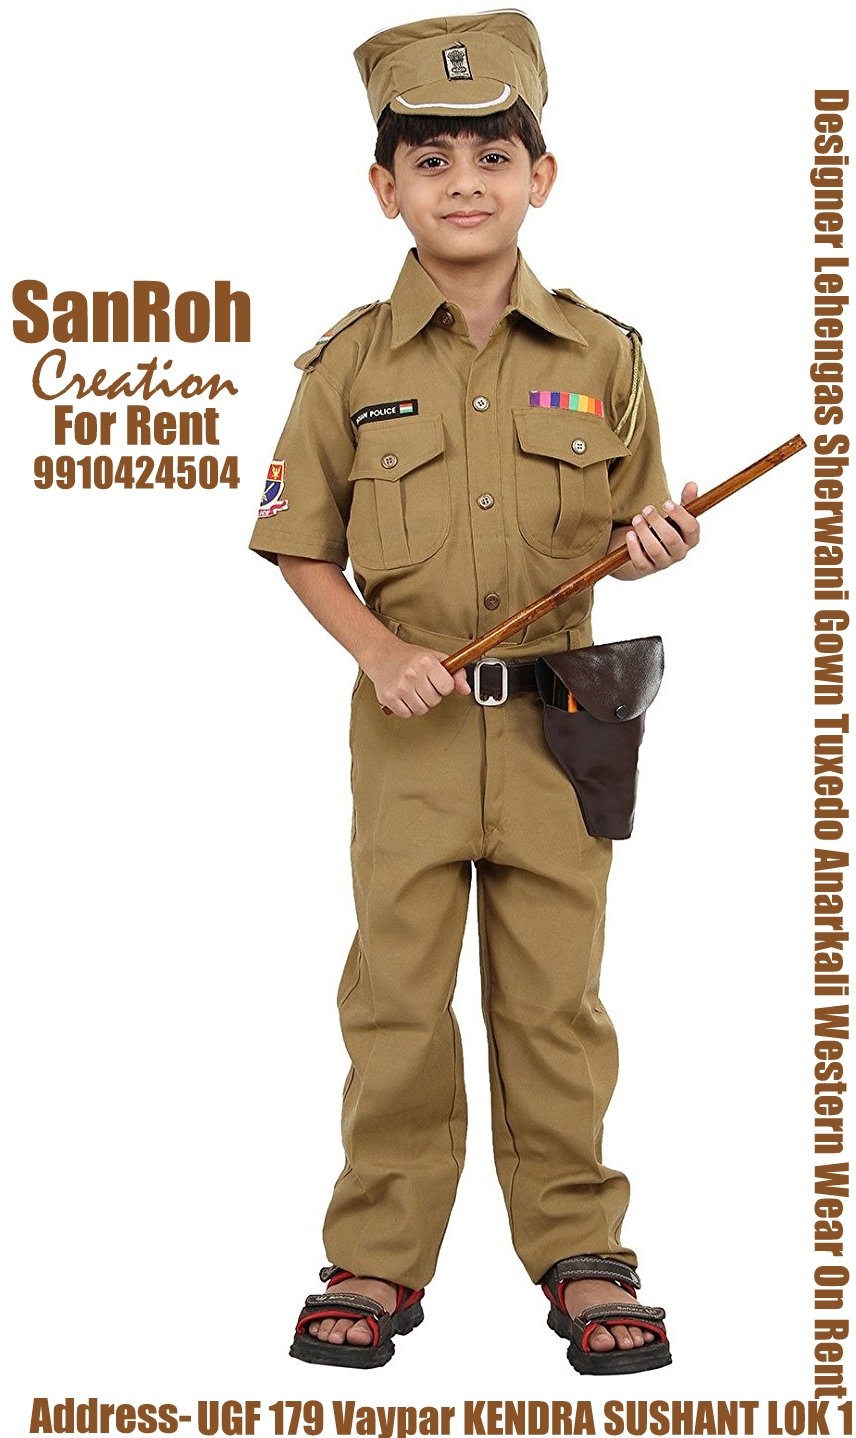 Fancy dress costumes on rent in Gurgaon sector 50